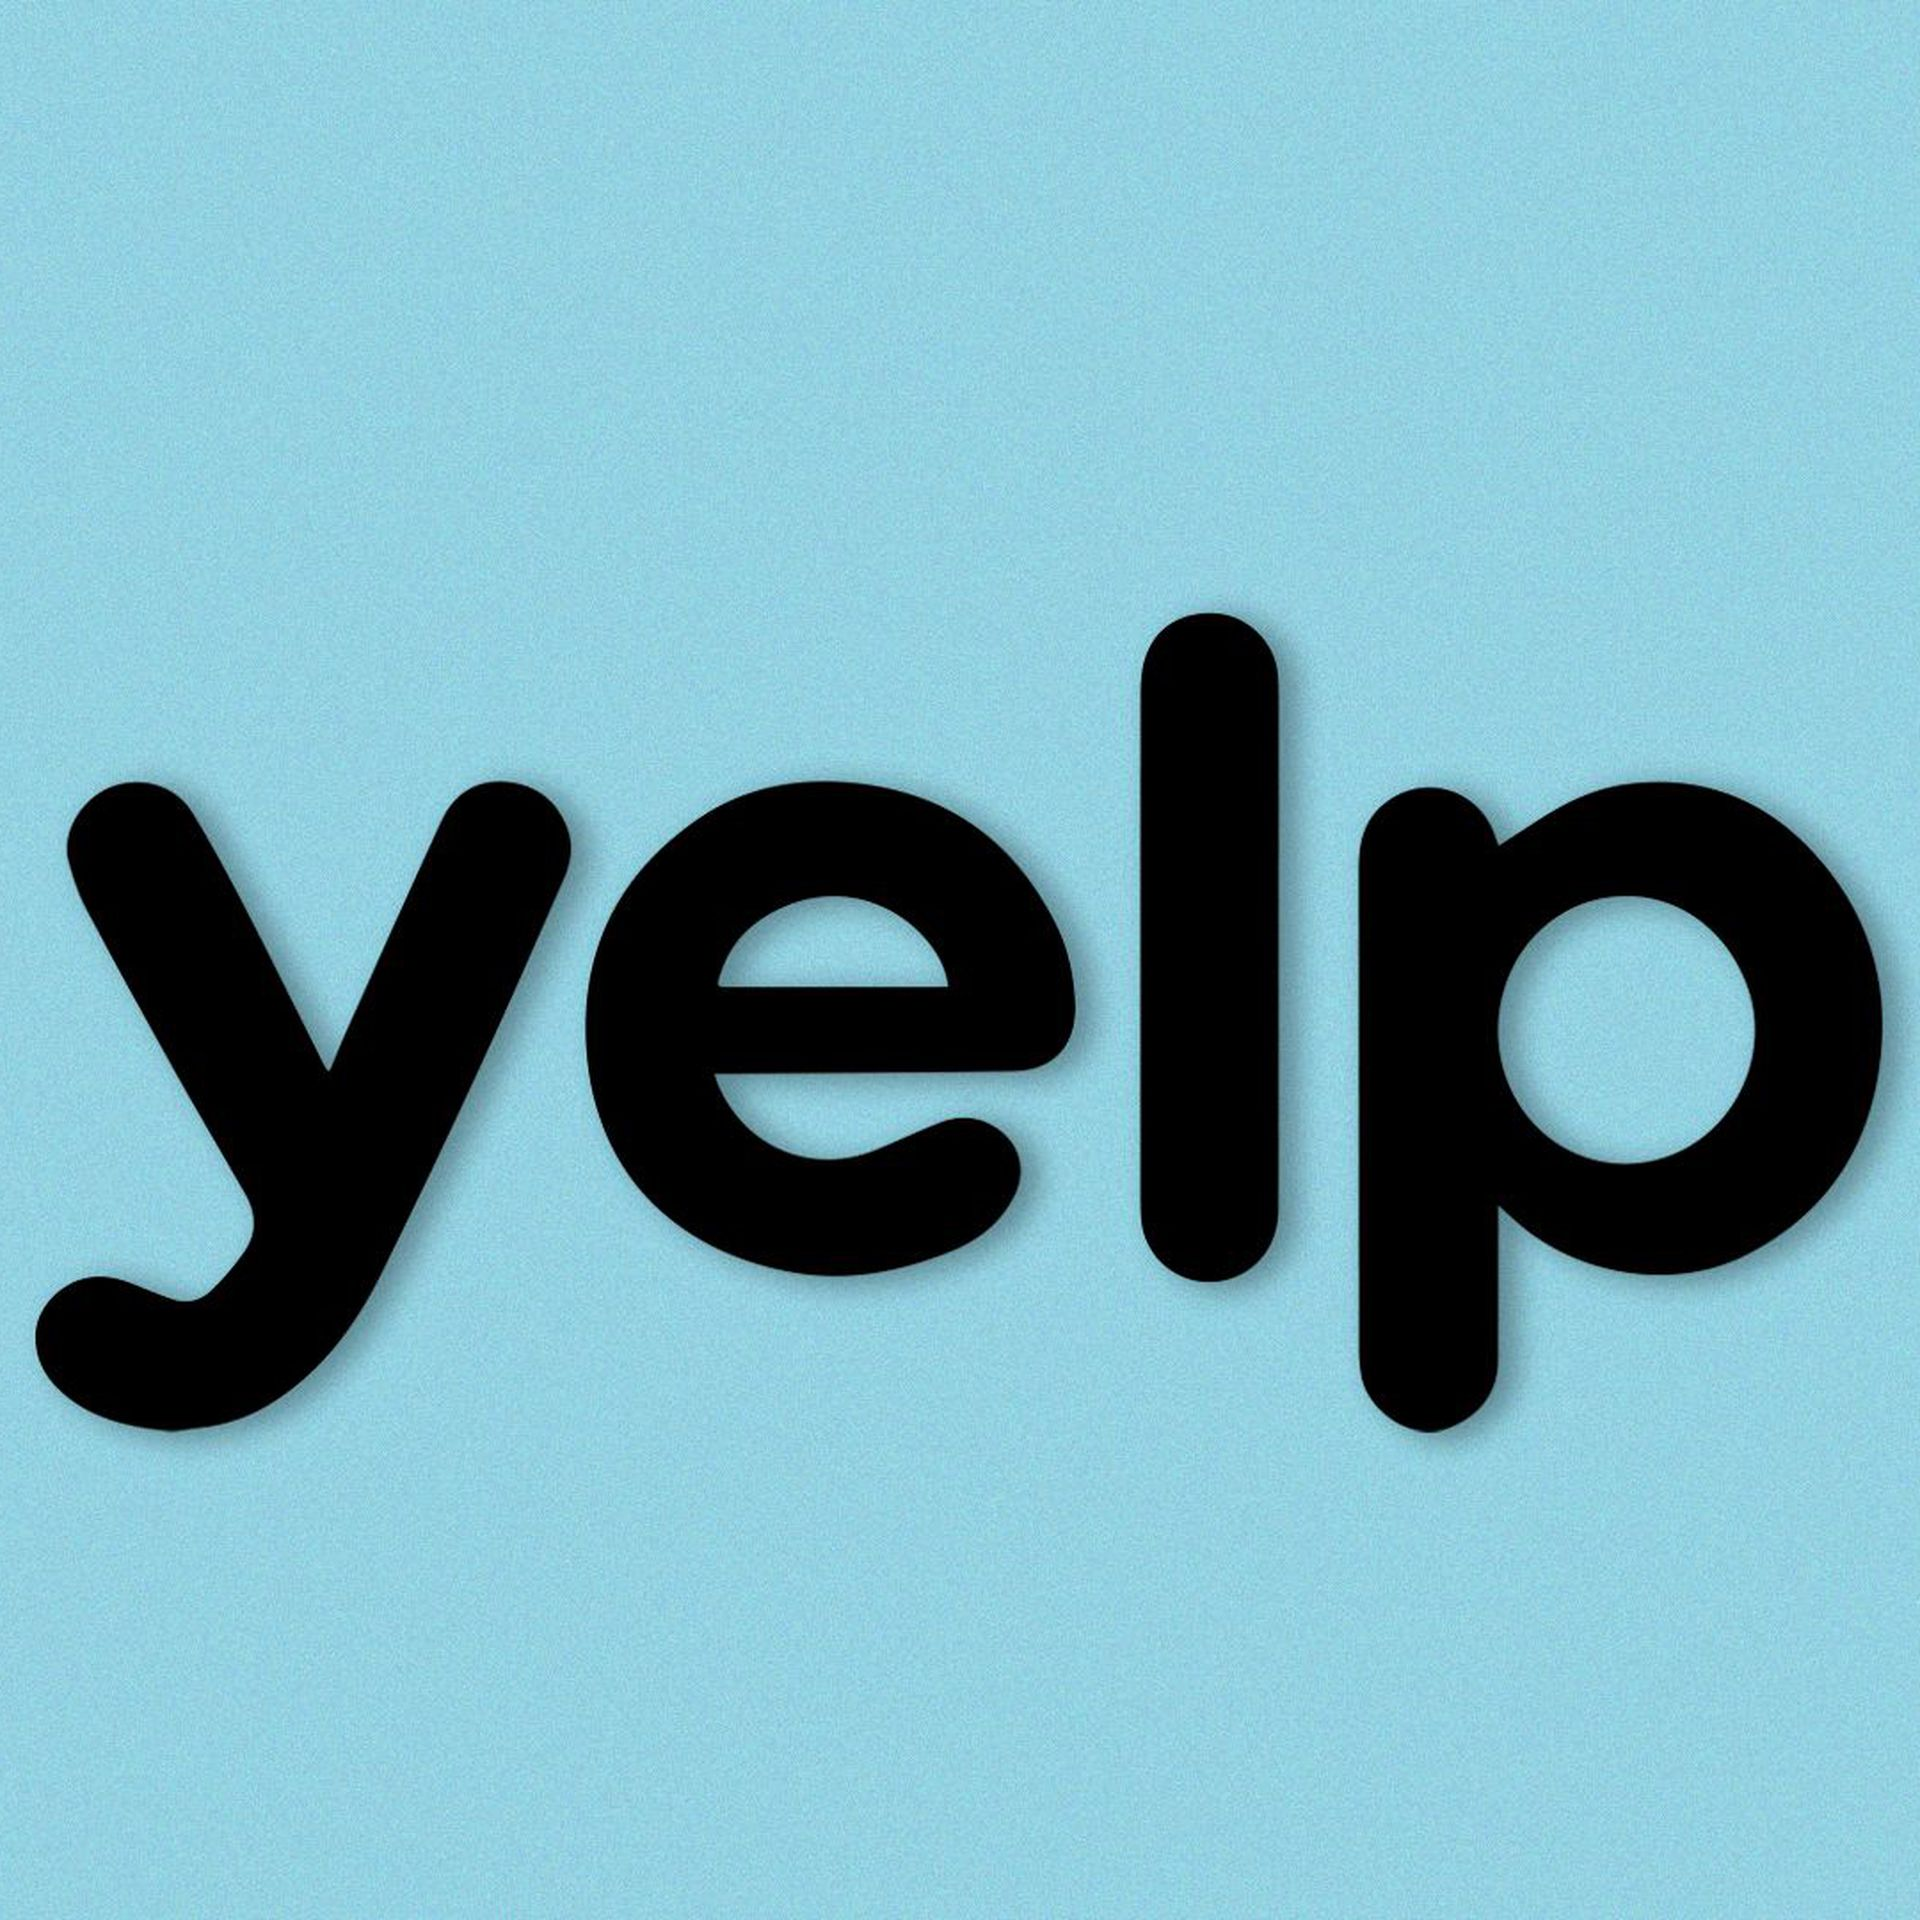 Illustration of Yelp logo with an angry face.